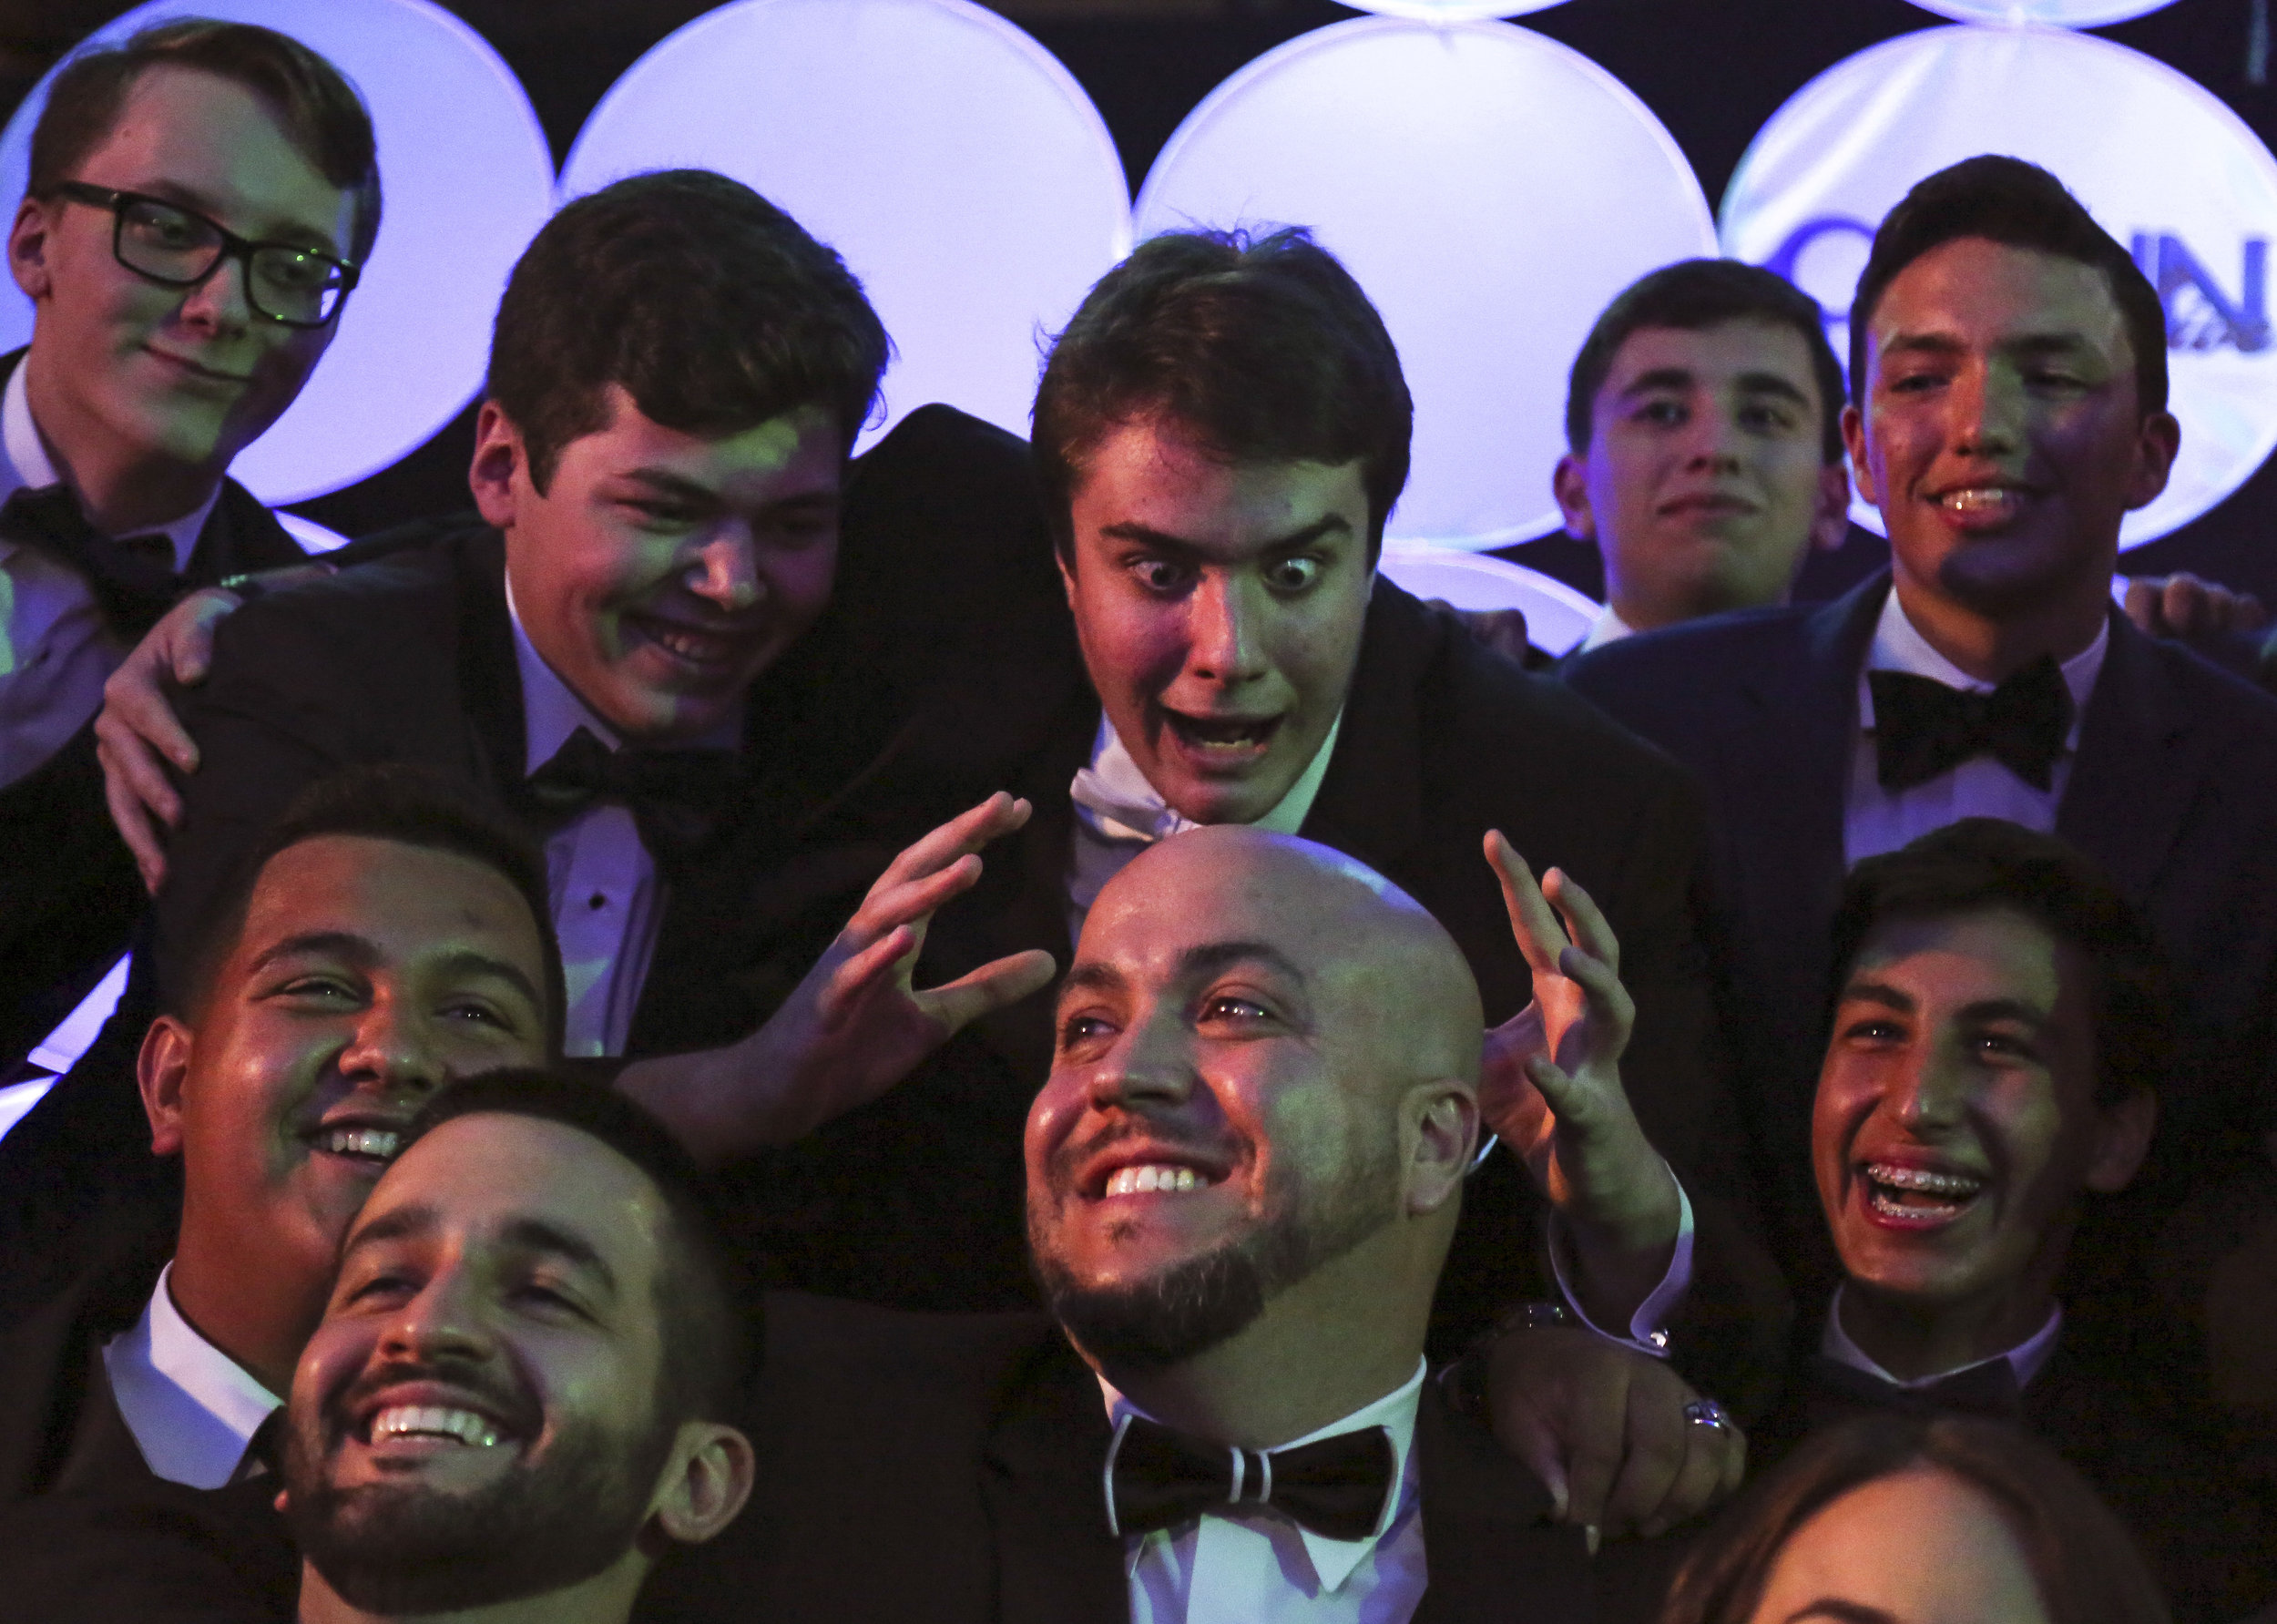 Phillip Bootsma, center top, makes a funny face while taking a group picture with CCNN live moderator Omar Delgado, center bottom, during the 3rd Annual Media Excellence Awards at Christopher Columbus High School on Saturday, April 16, 2016. The ceremony is presented by the Christopher Columbus News Network, which is run by high school students.